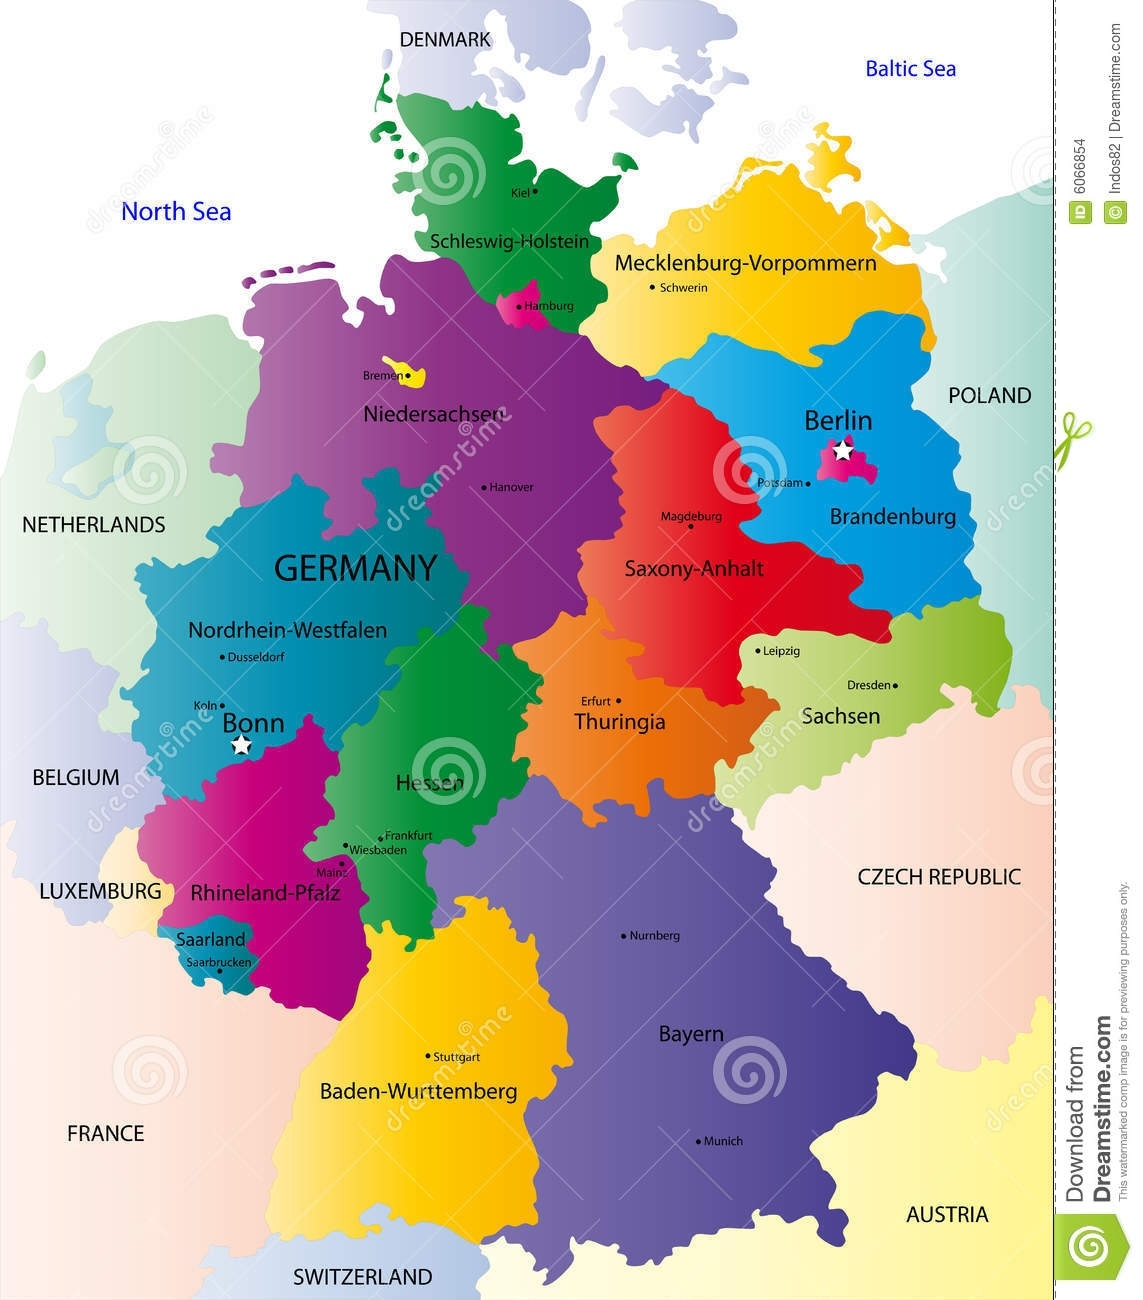 Map Of Germany Stock Vector. Illustration Of Illustration - 6066854 throughout Map Of Germany And Surrounding Countries